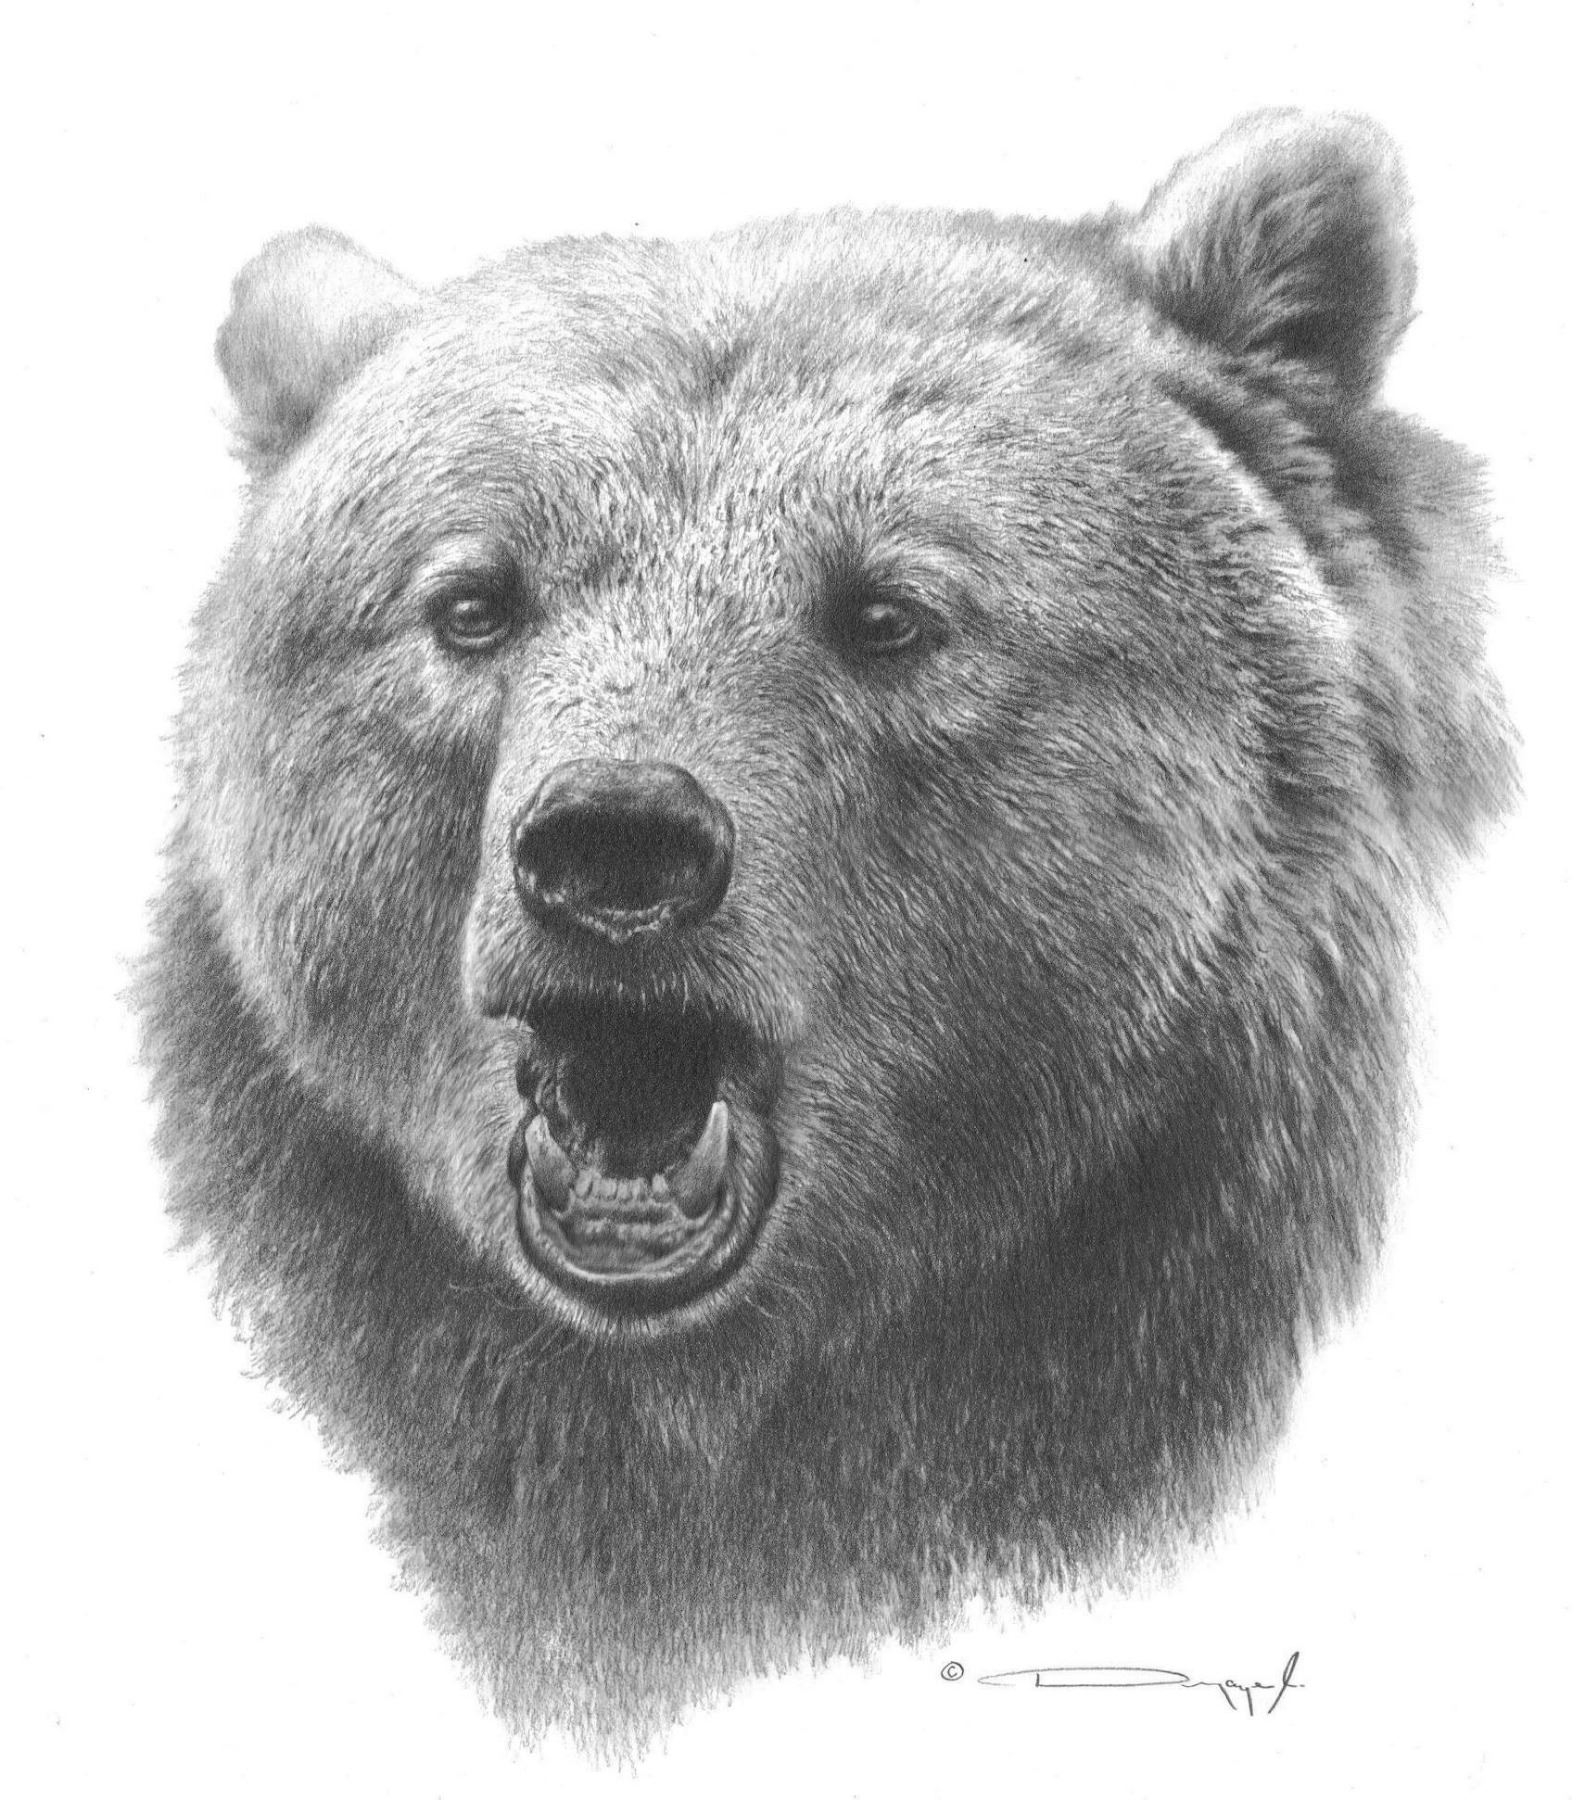 bear face drawing grizzly bear face drawings grizzly bear face drawings bear drawing face